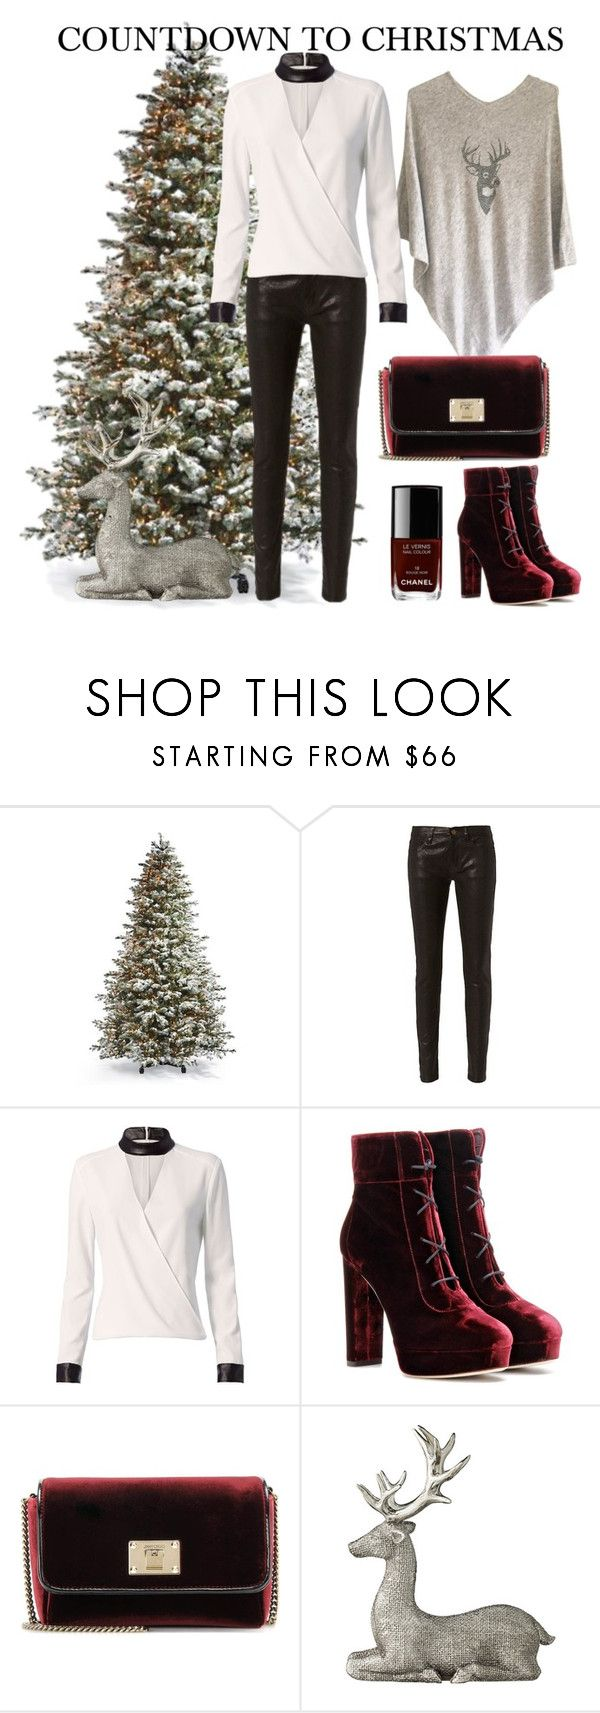 """""""COUNTDOWN TO CHRISTMAS"""" by cashmererebeluk on Polyvore featuring Frontgate, Frame, Exclusive for Intermix, Jimmy Choo, Lene Bjerre and Chanel"""